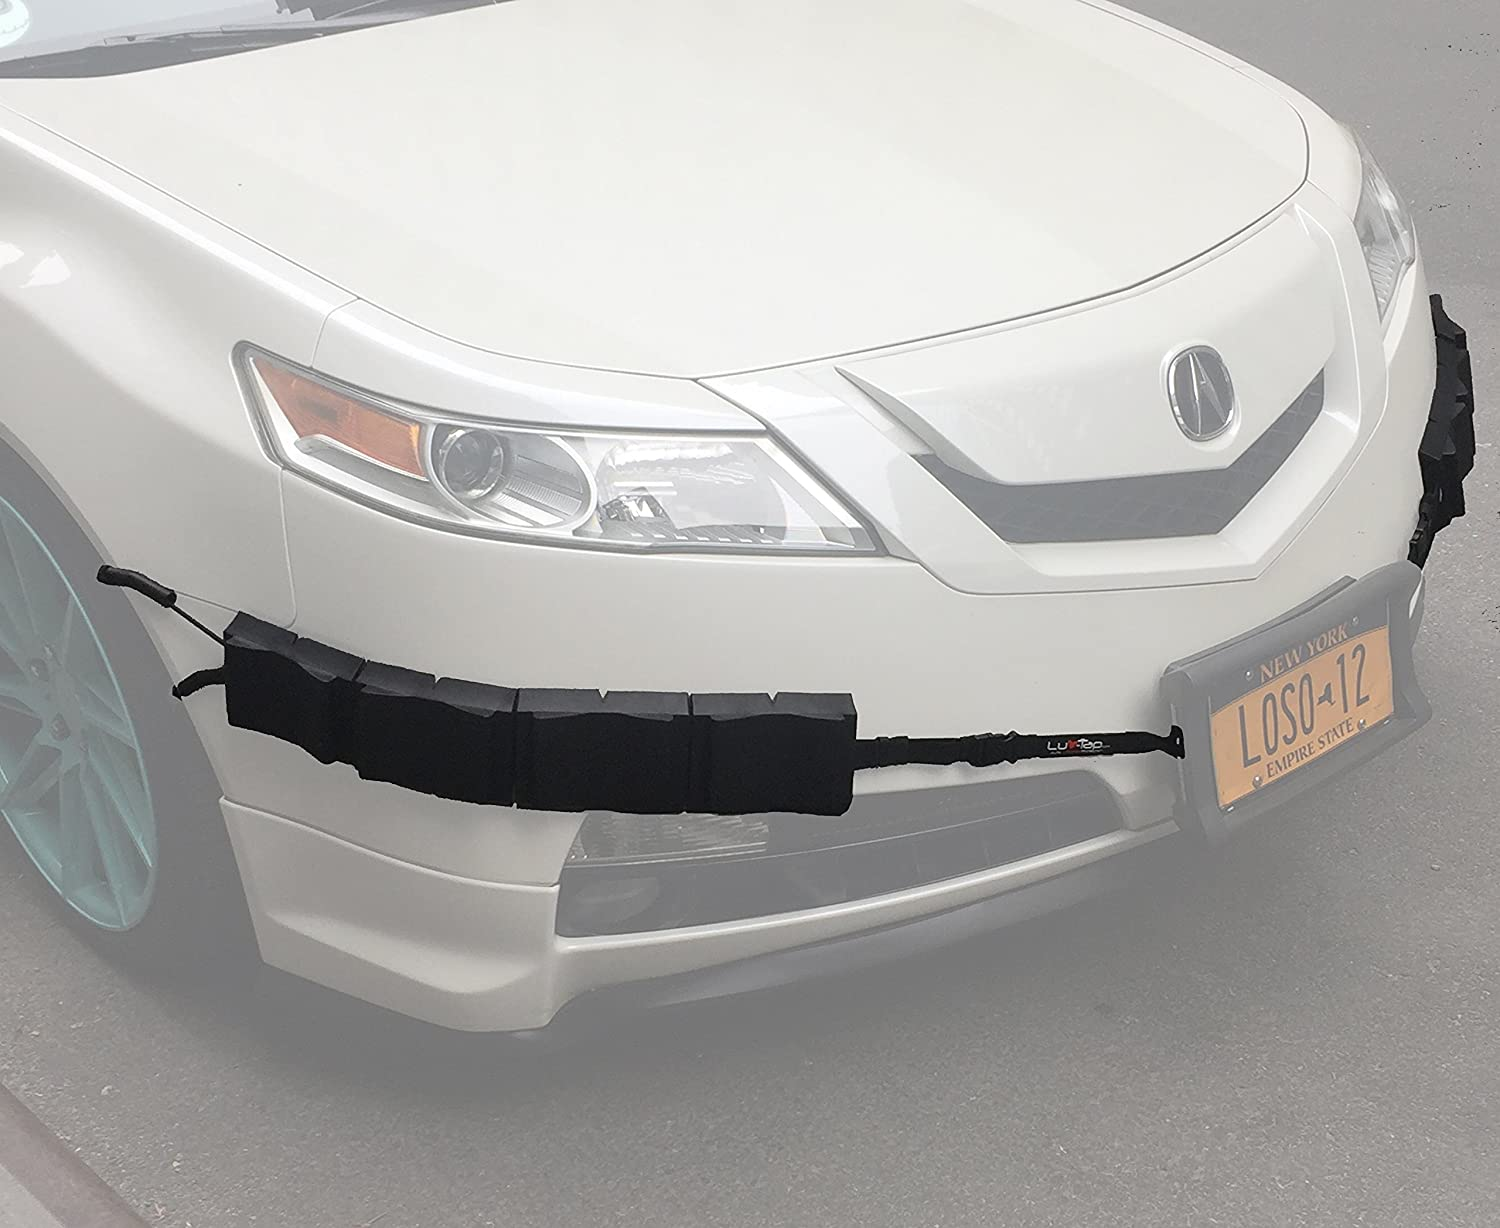 Bumper Thumper Ultimate Complete Coverage Front Bumper Guard Shock  Absorbing Flexible License Plate Frame Protection System (Left and Right